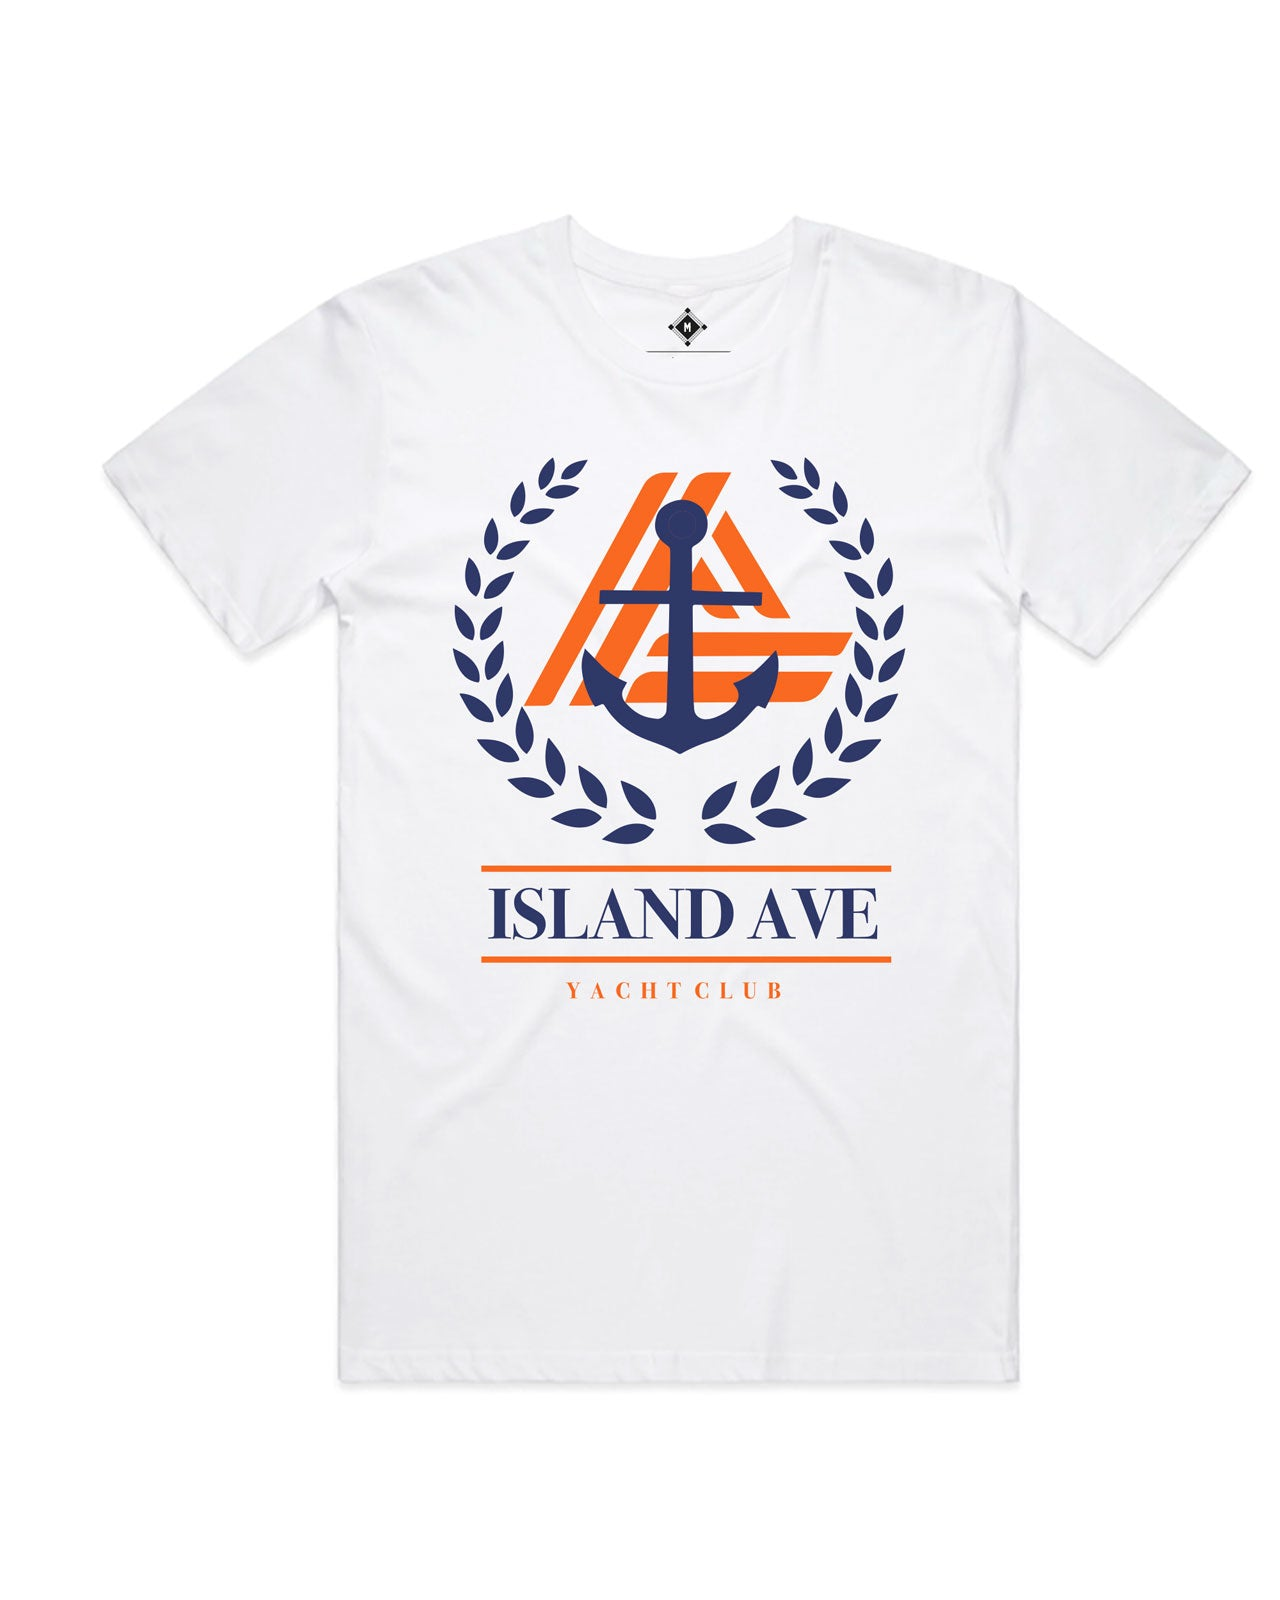 Yacht Club Tees (White)